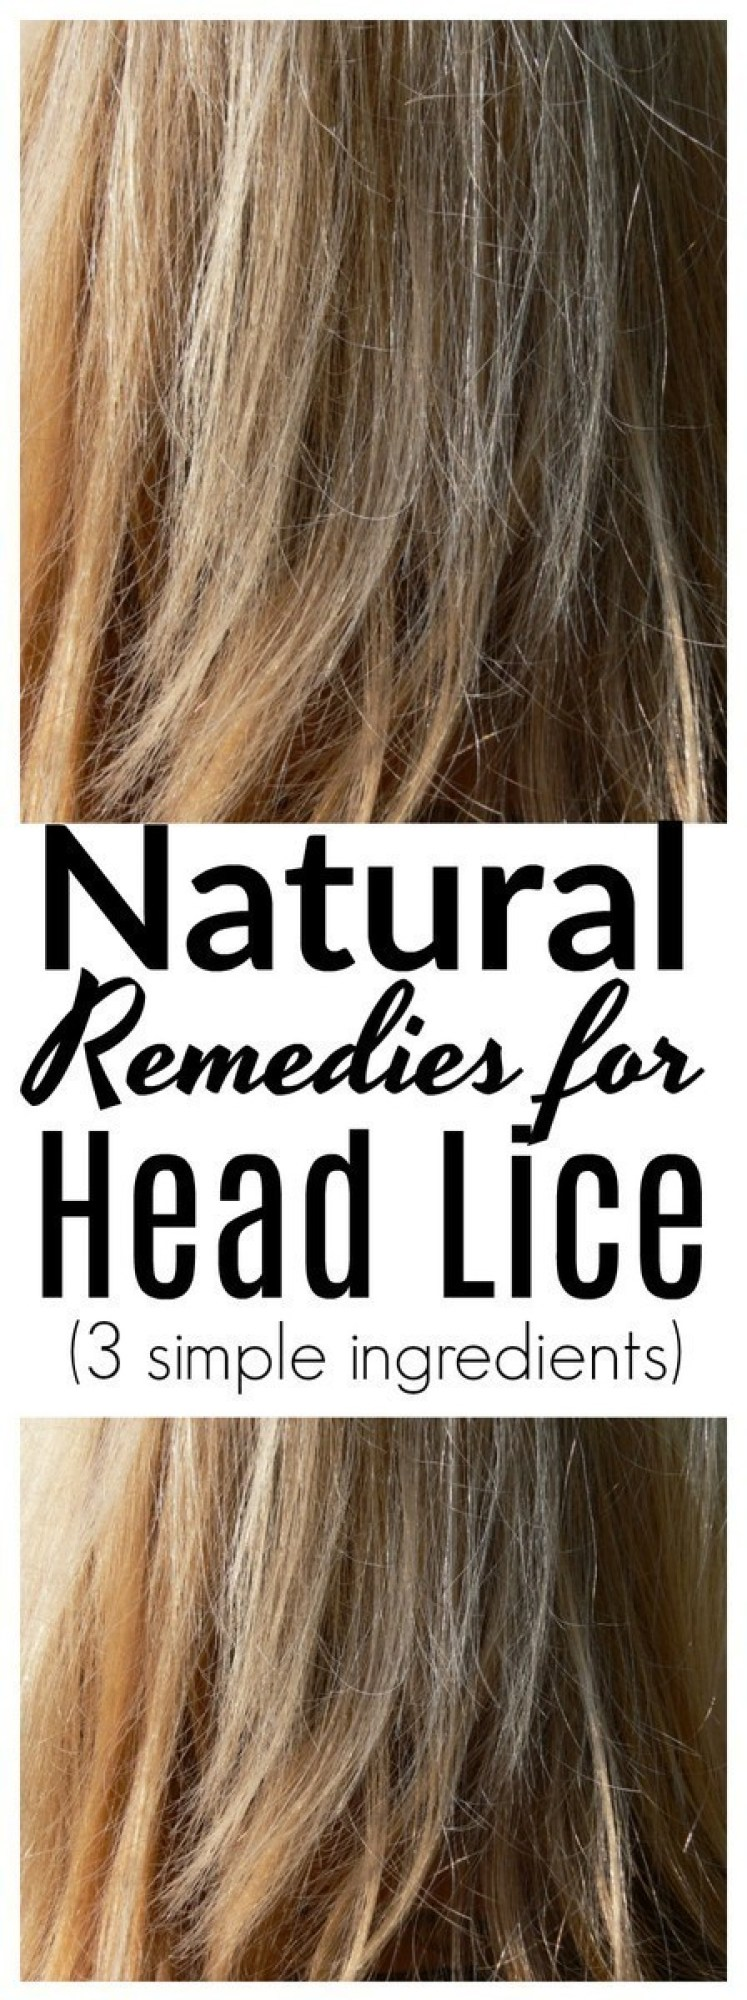 Many kids deal with unwanted head lice throughout the school year. Here are some natural remedies that are gentle, non-toxic, and incredibly effective.